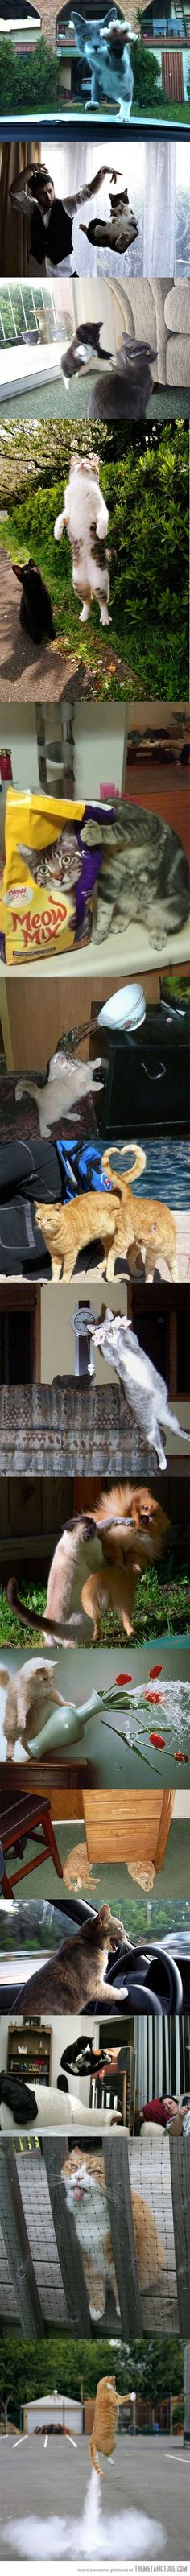 15 Perfectly Timed Cat Photos - Mommy Has A Potty Mouth